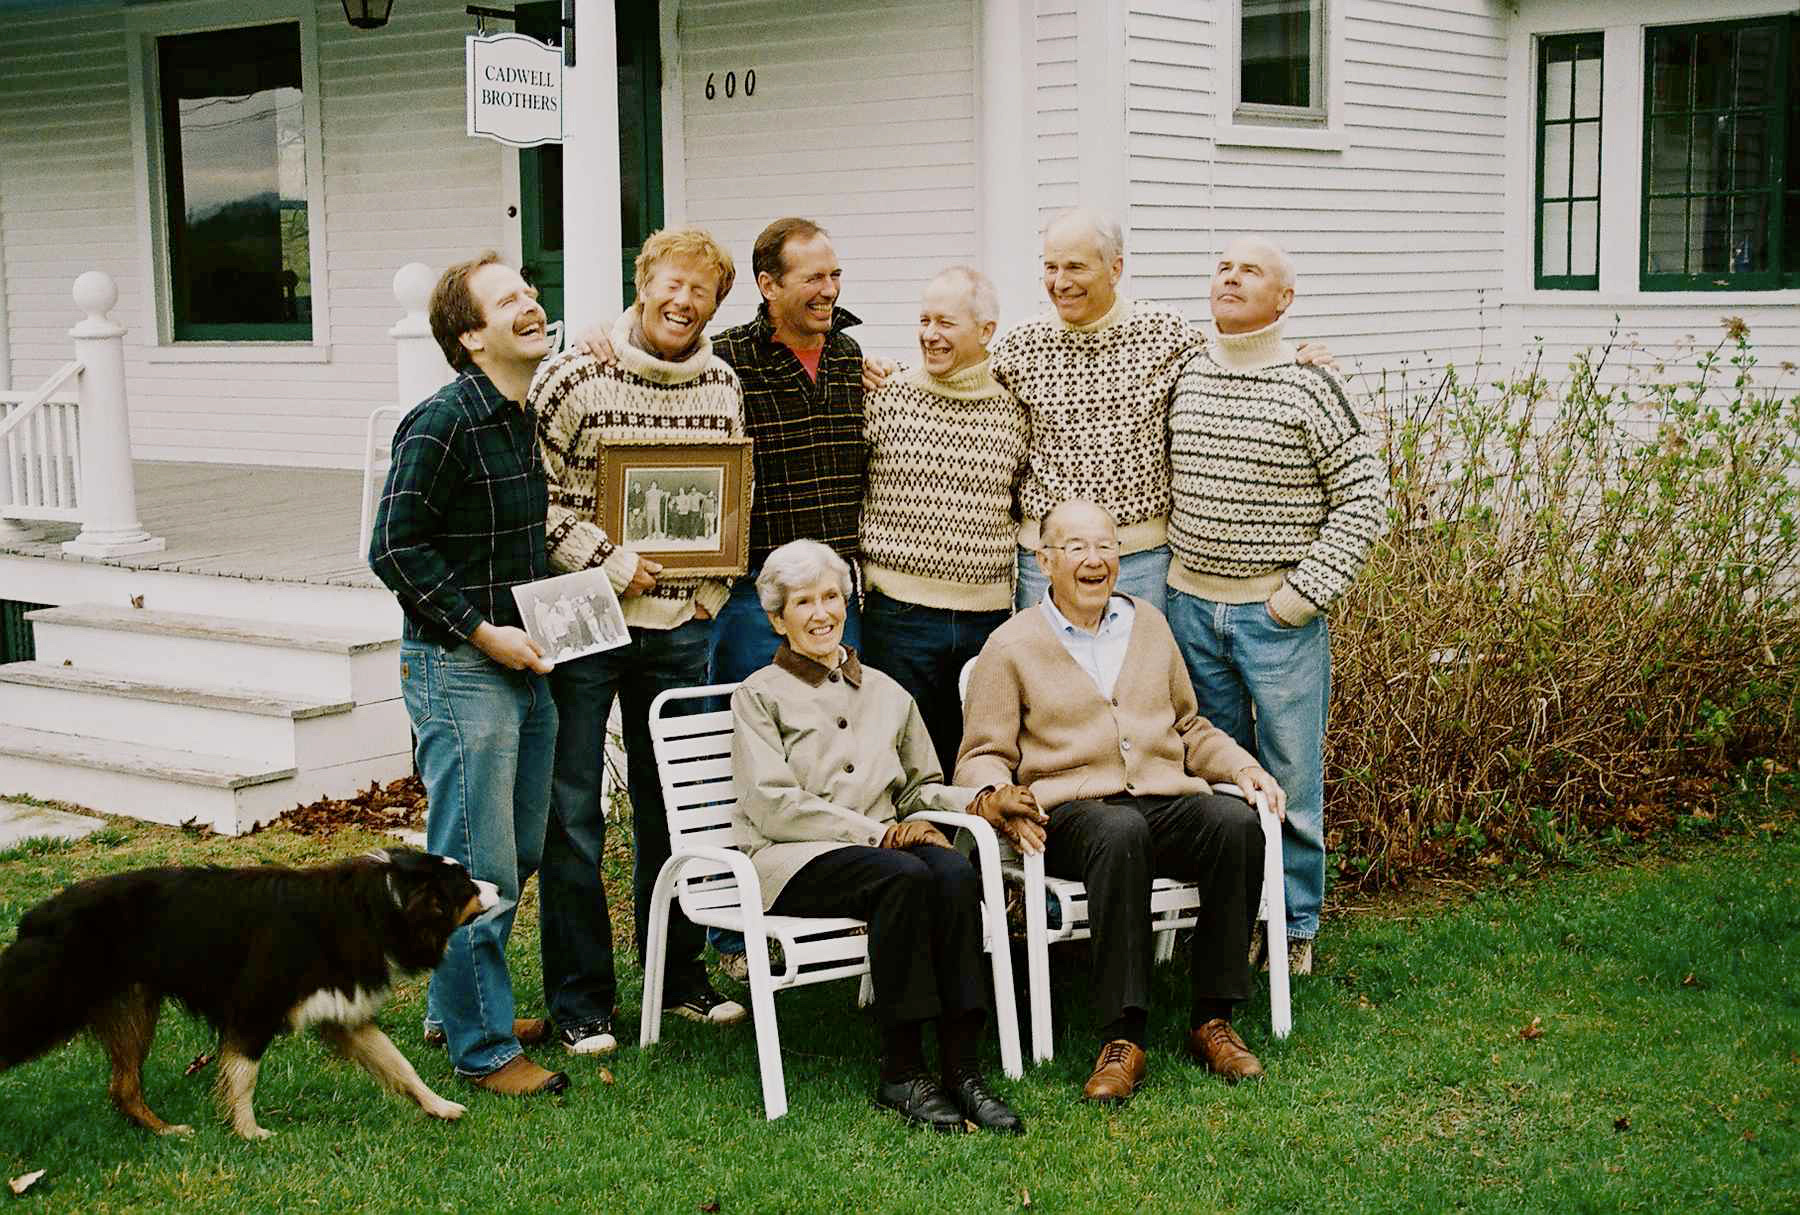 Cadwell Brothers (wearing sweaters and shirts made by their mother), with their Parents, circa 2005